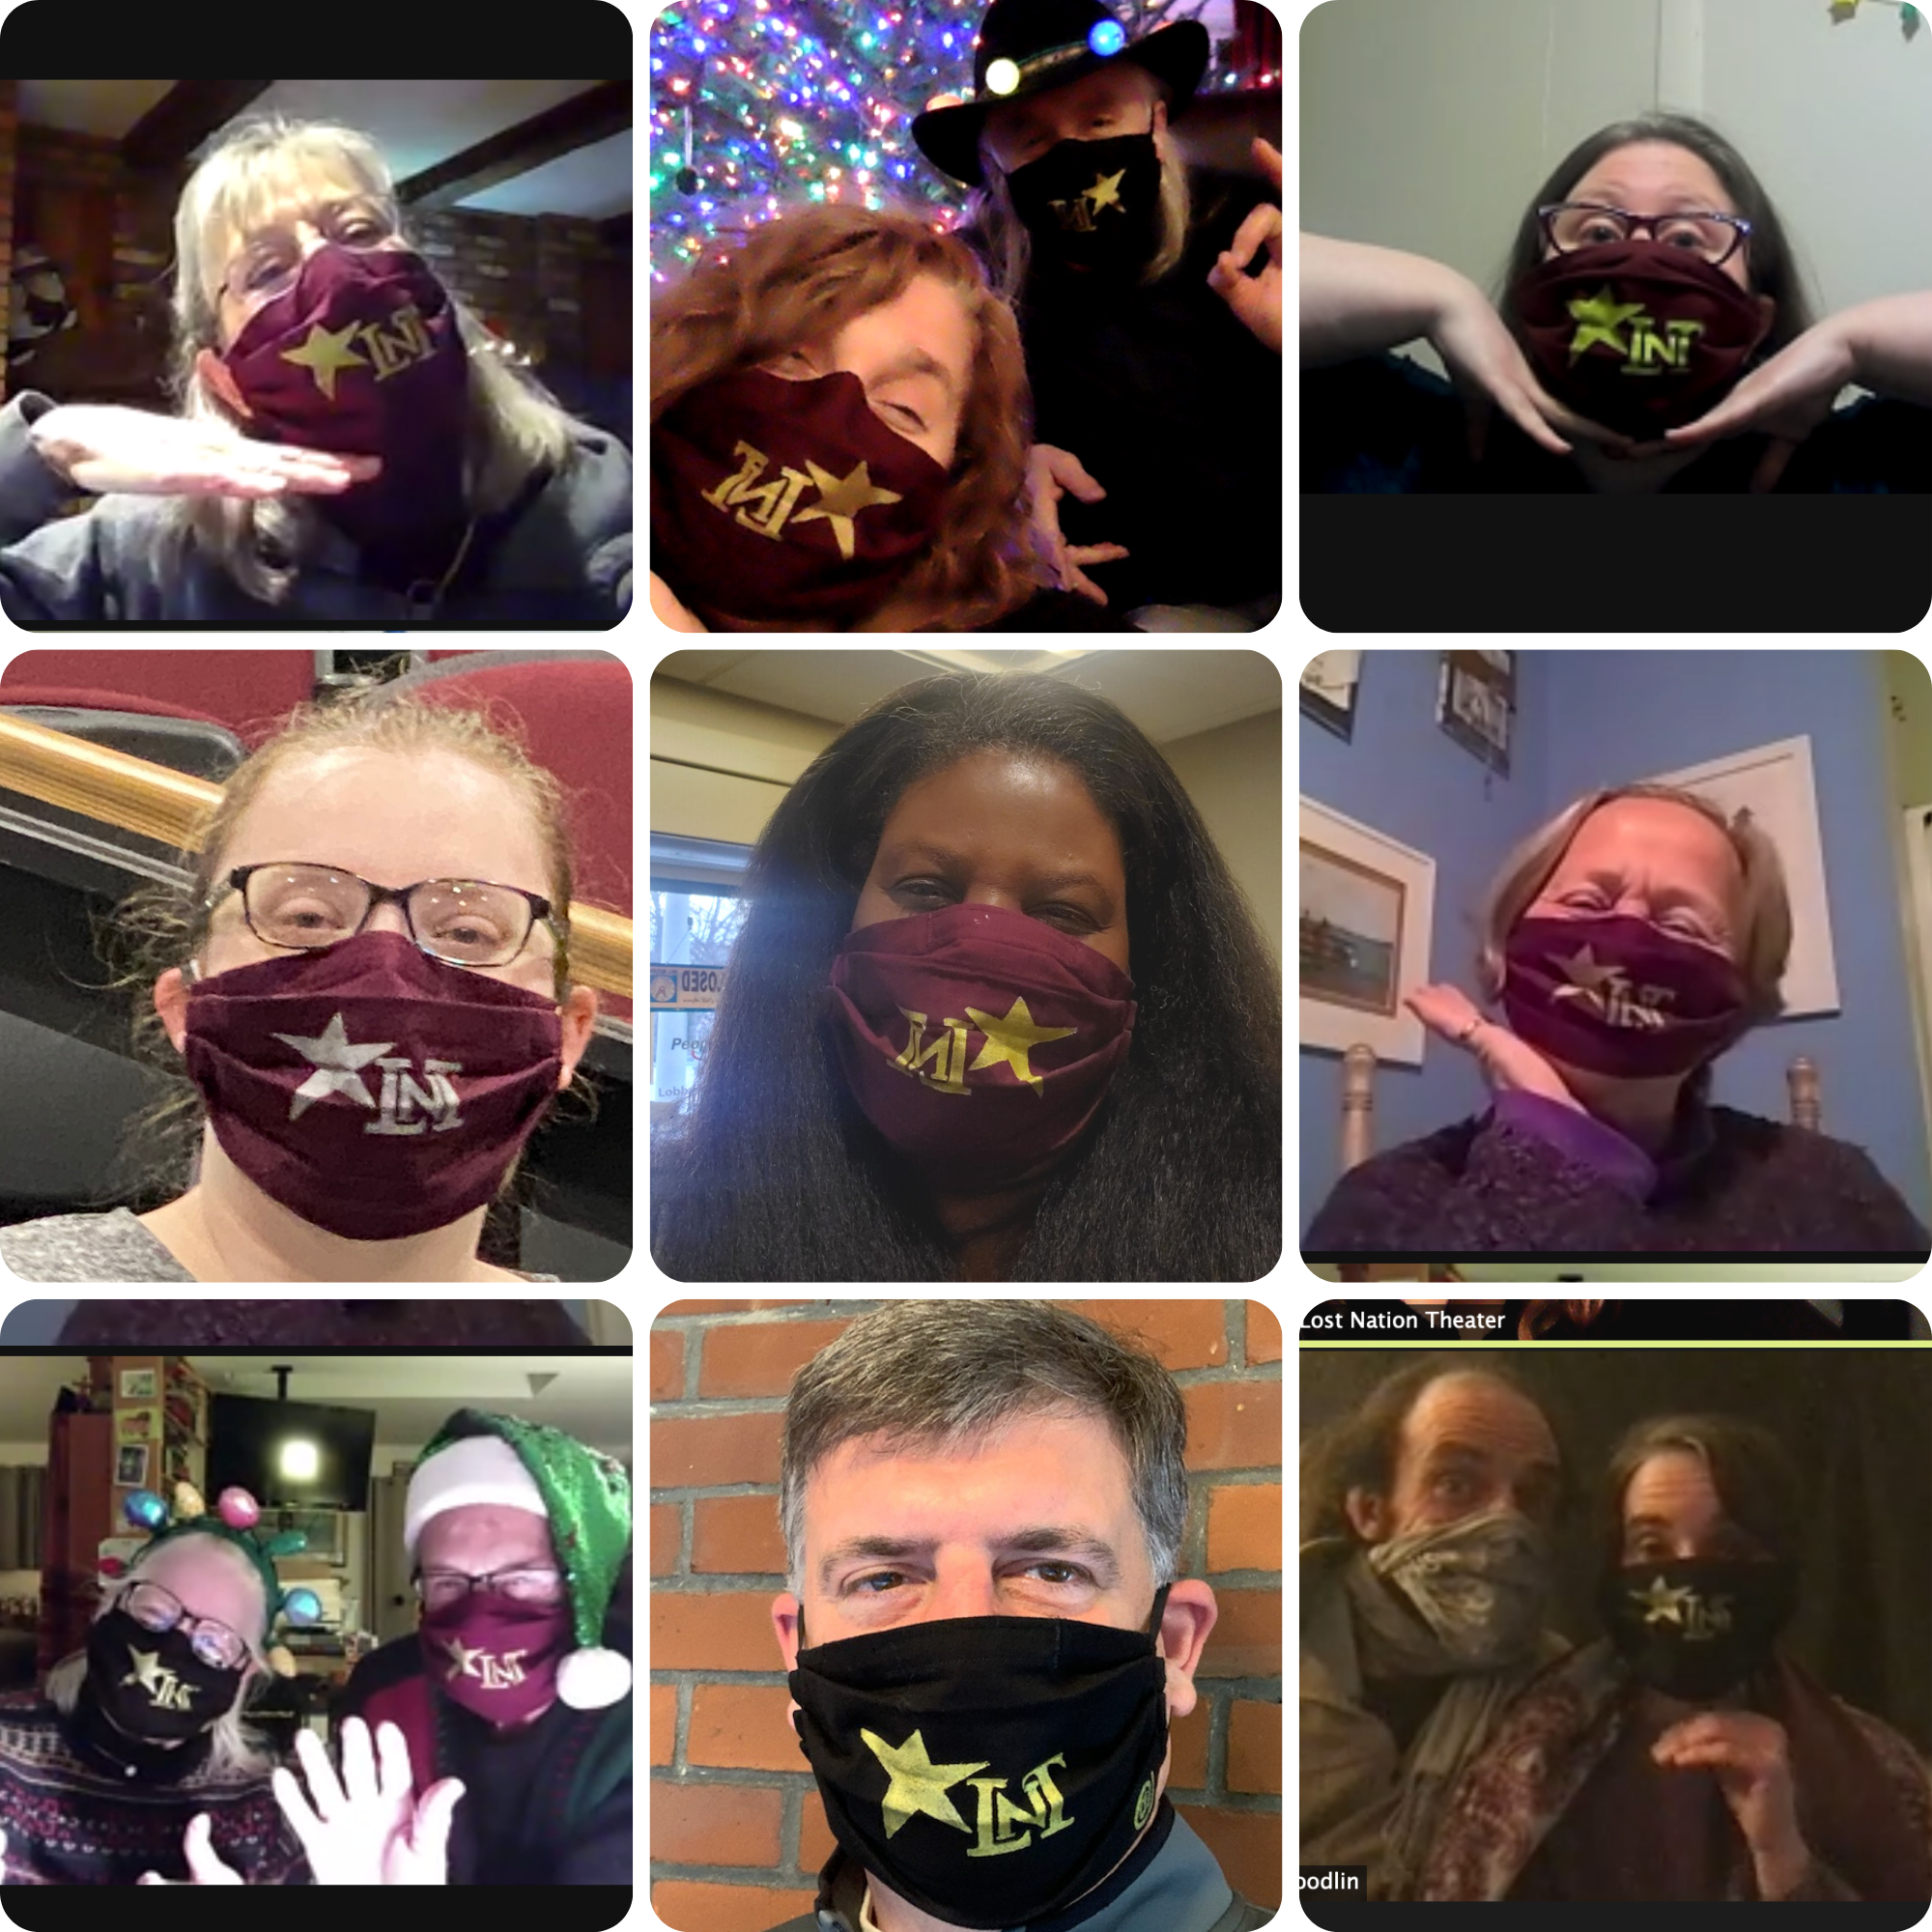 LNT Board Members and volunteers model their LNT Face Masks